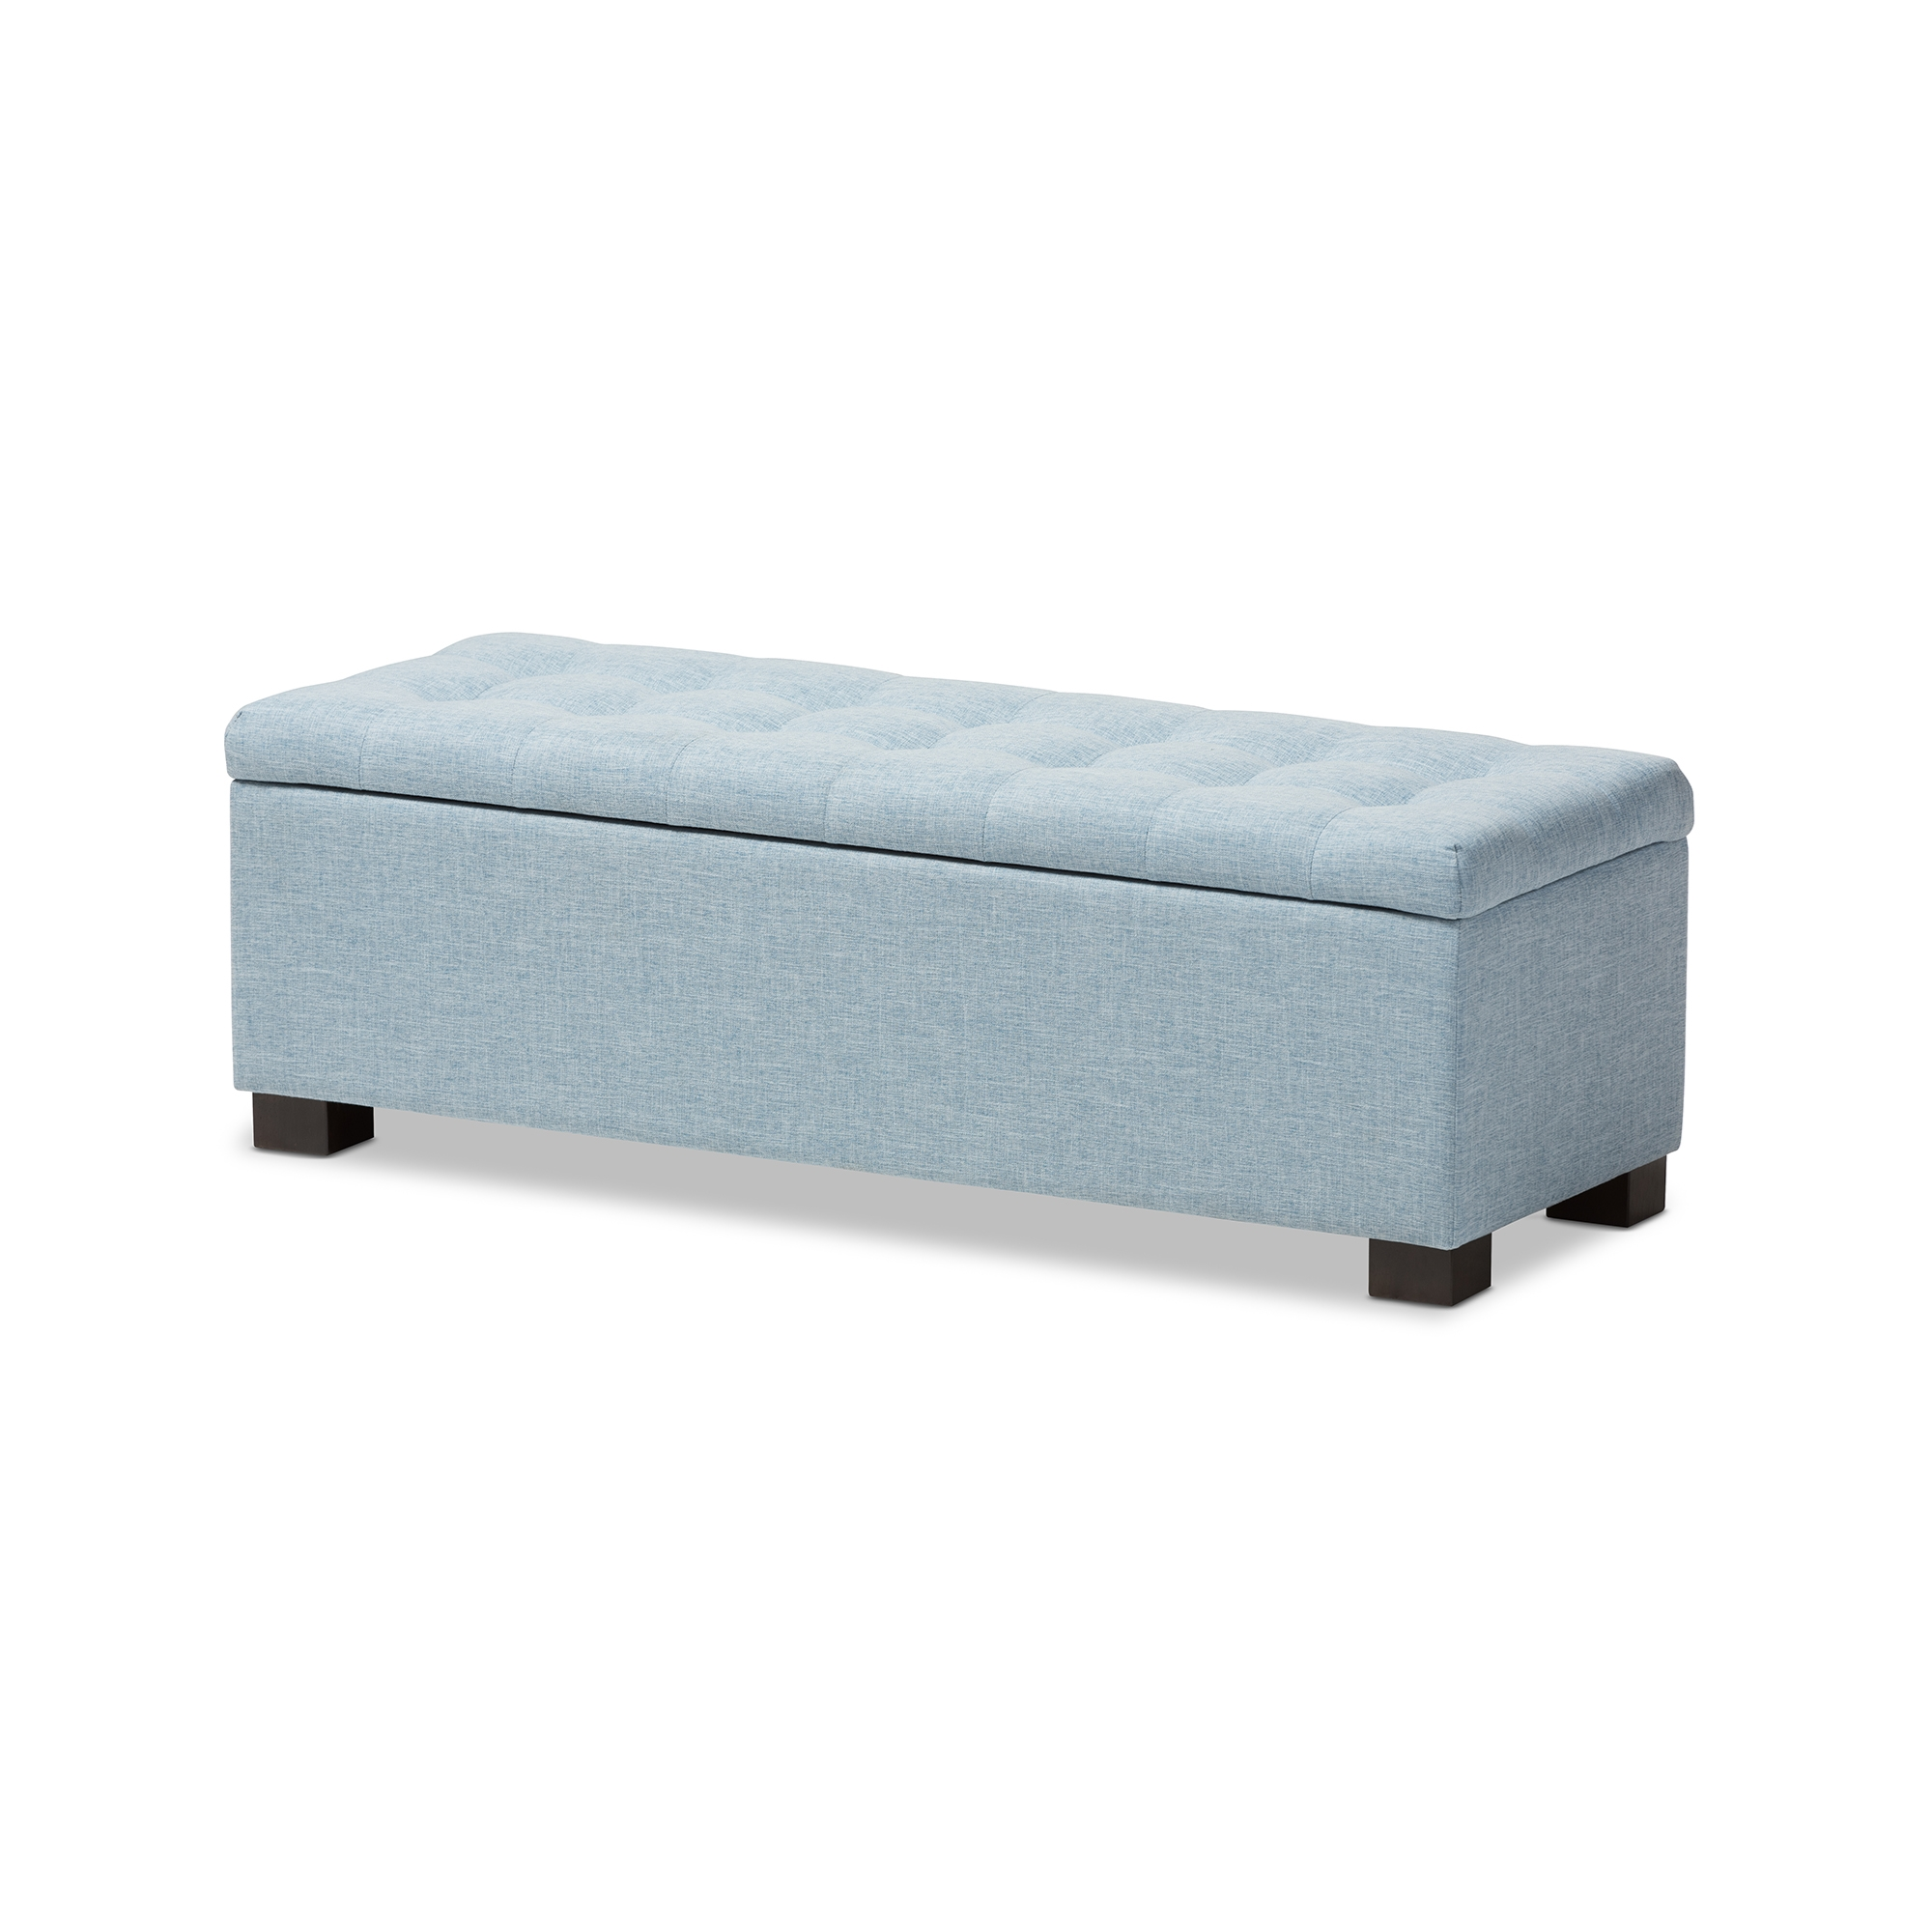 Baxton Studio Roanoke Modern And Contemporary Light Blue Fabric Upholstered  Grid Tufting Storage Ottoman Bench ...